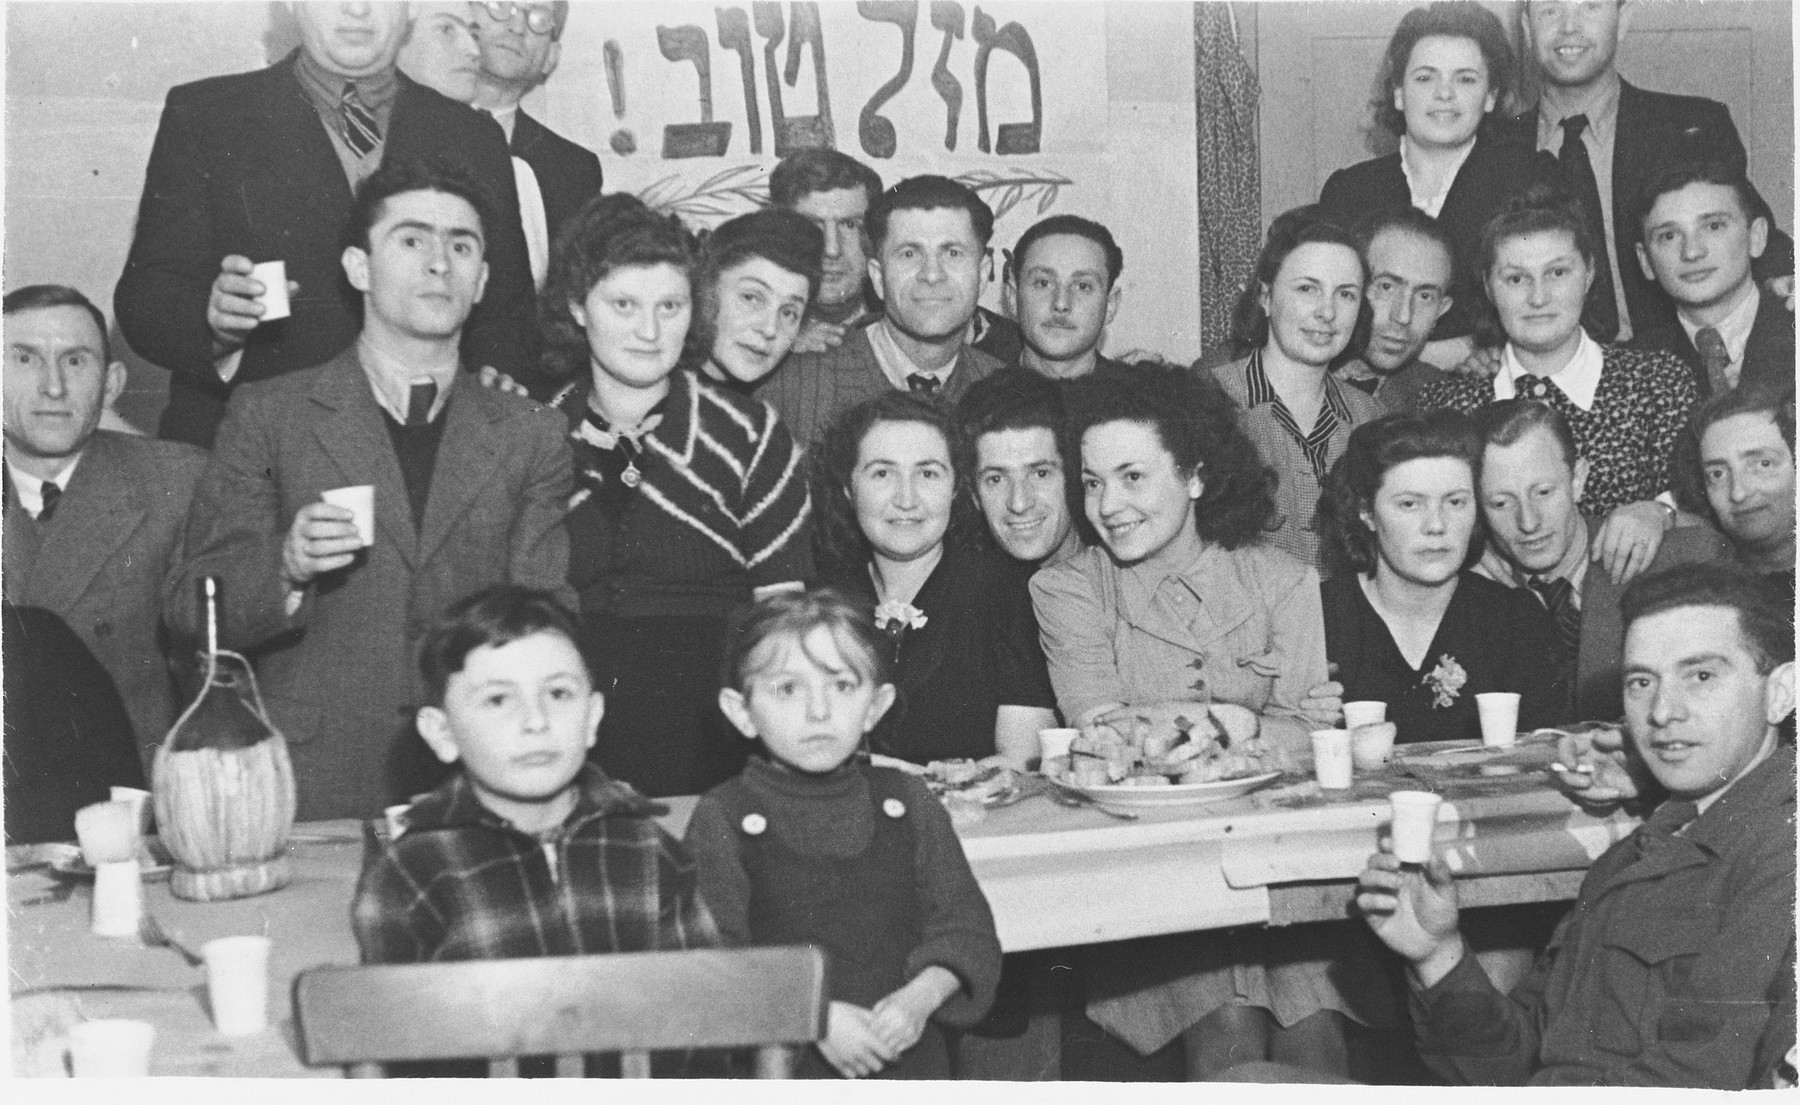 Jewish DPs at the kibbutz hachshara (Zionist collective) in Ponte Emma (near Florence), are gathered around a table during a wedding celebration for two of their members.